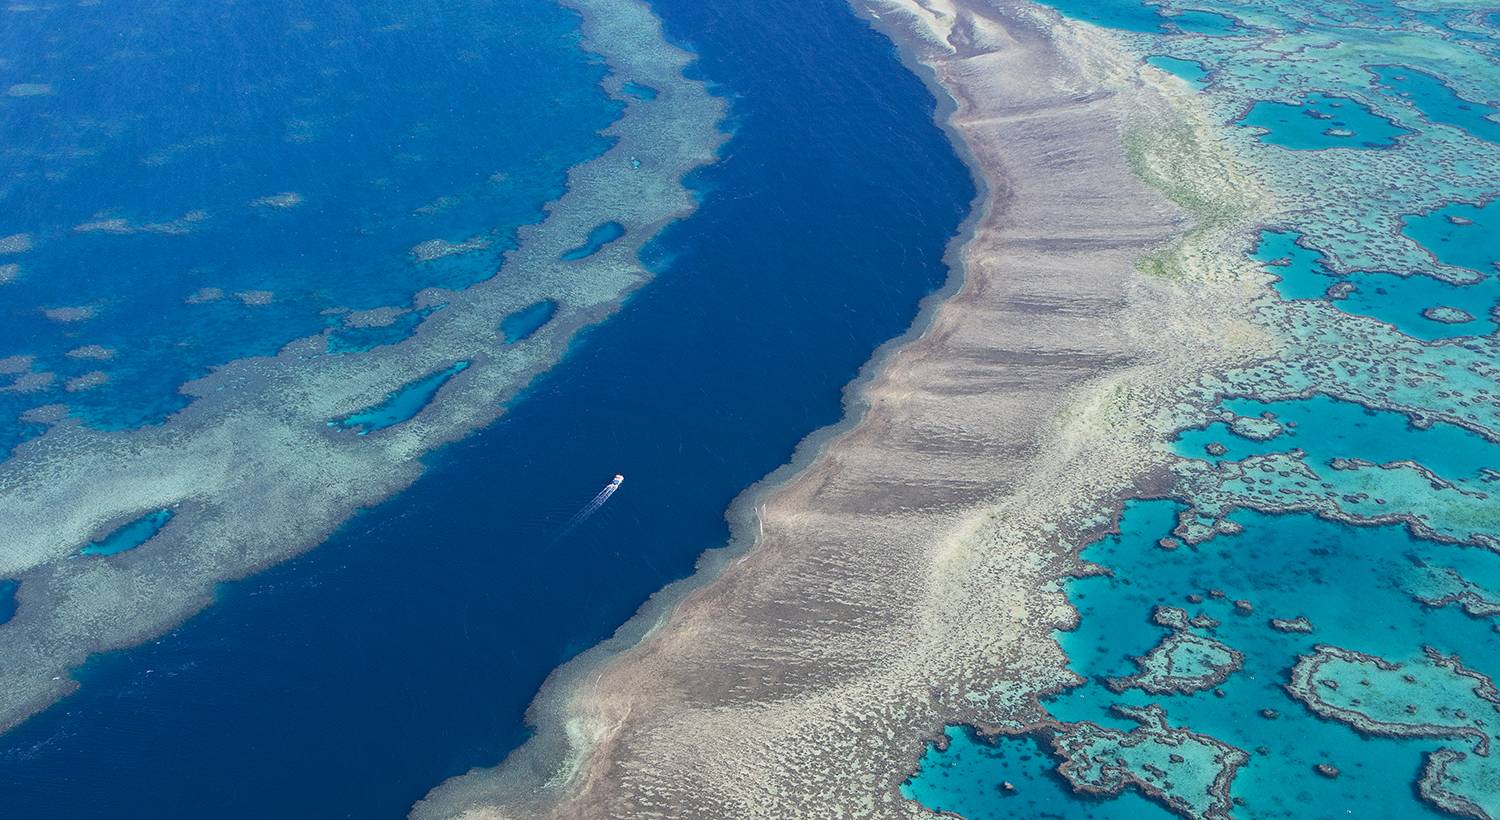 William_Patino_Barrier_Reef_Queensland